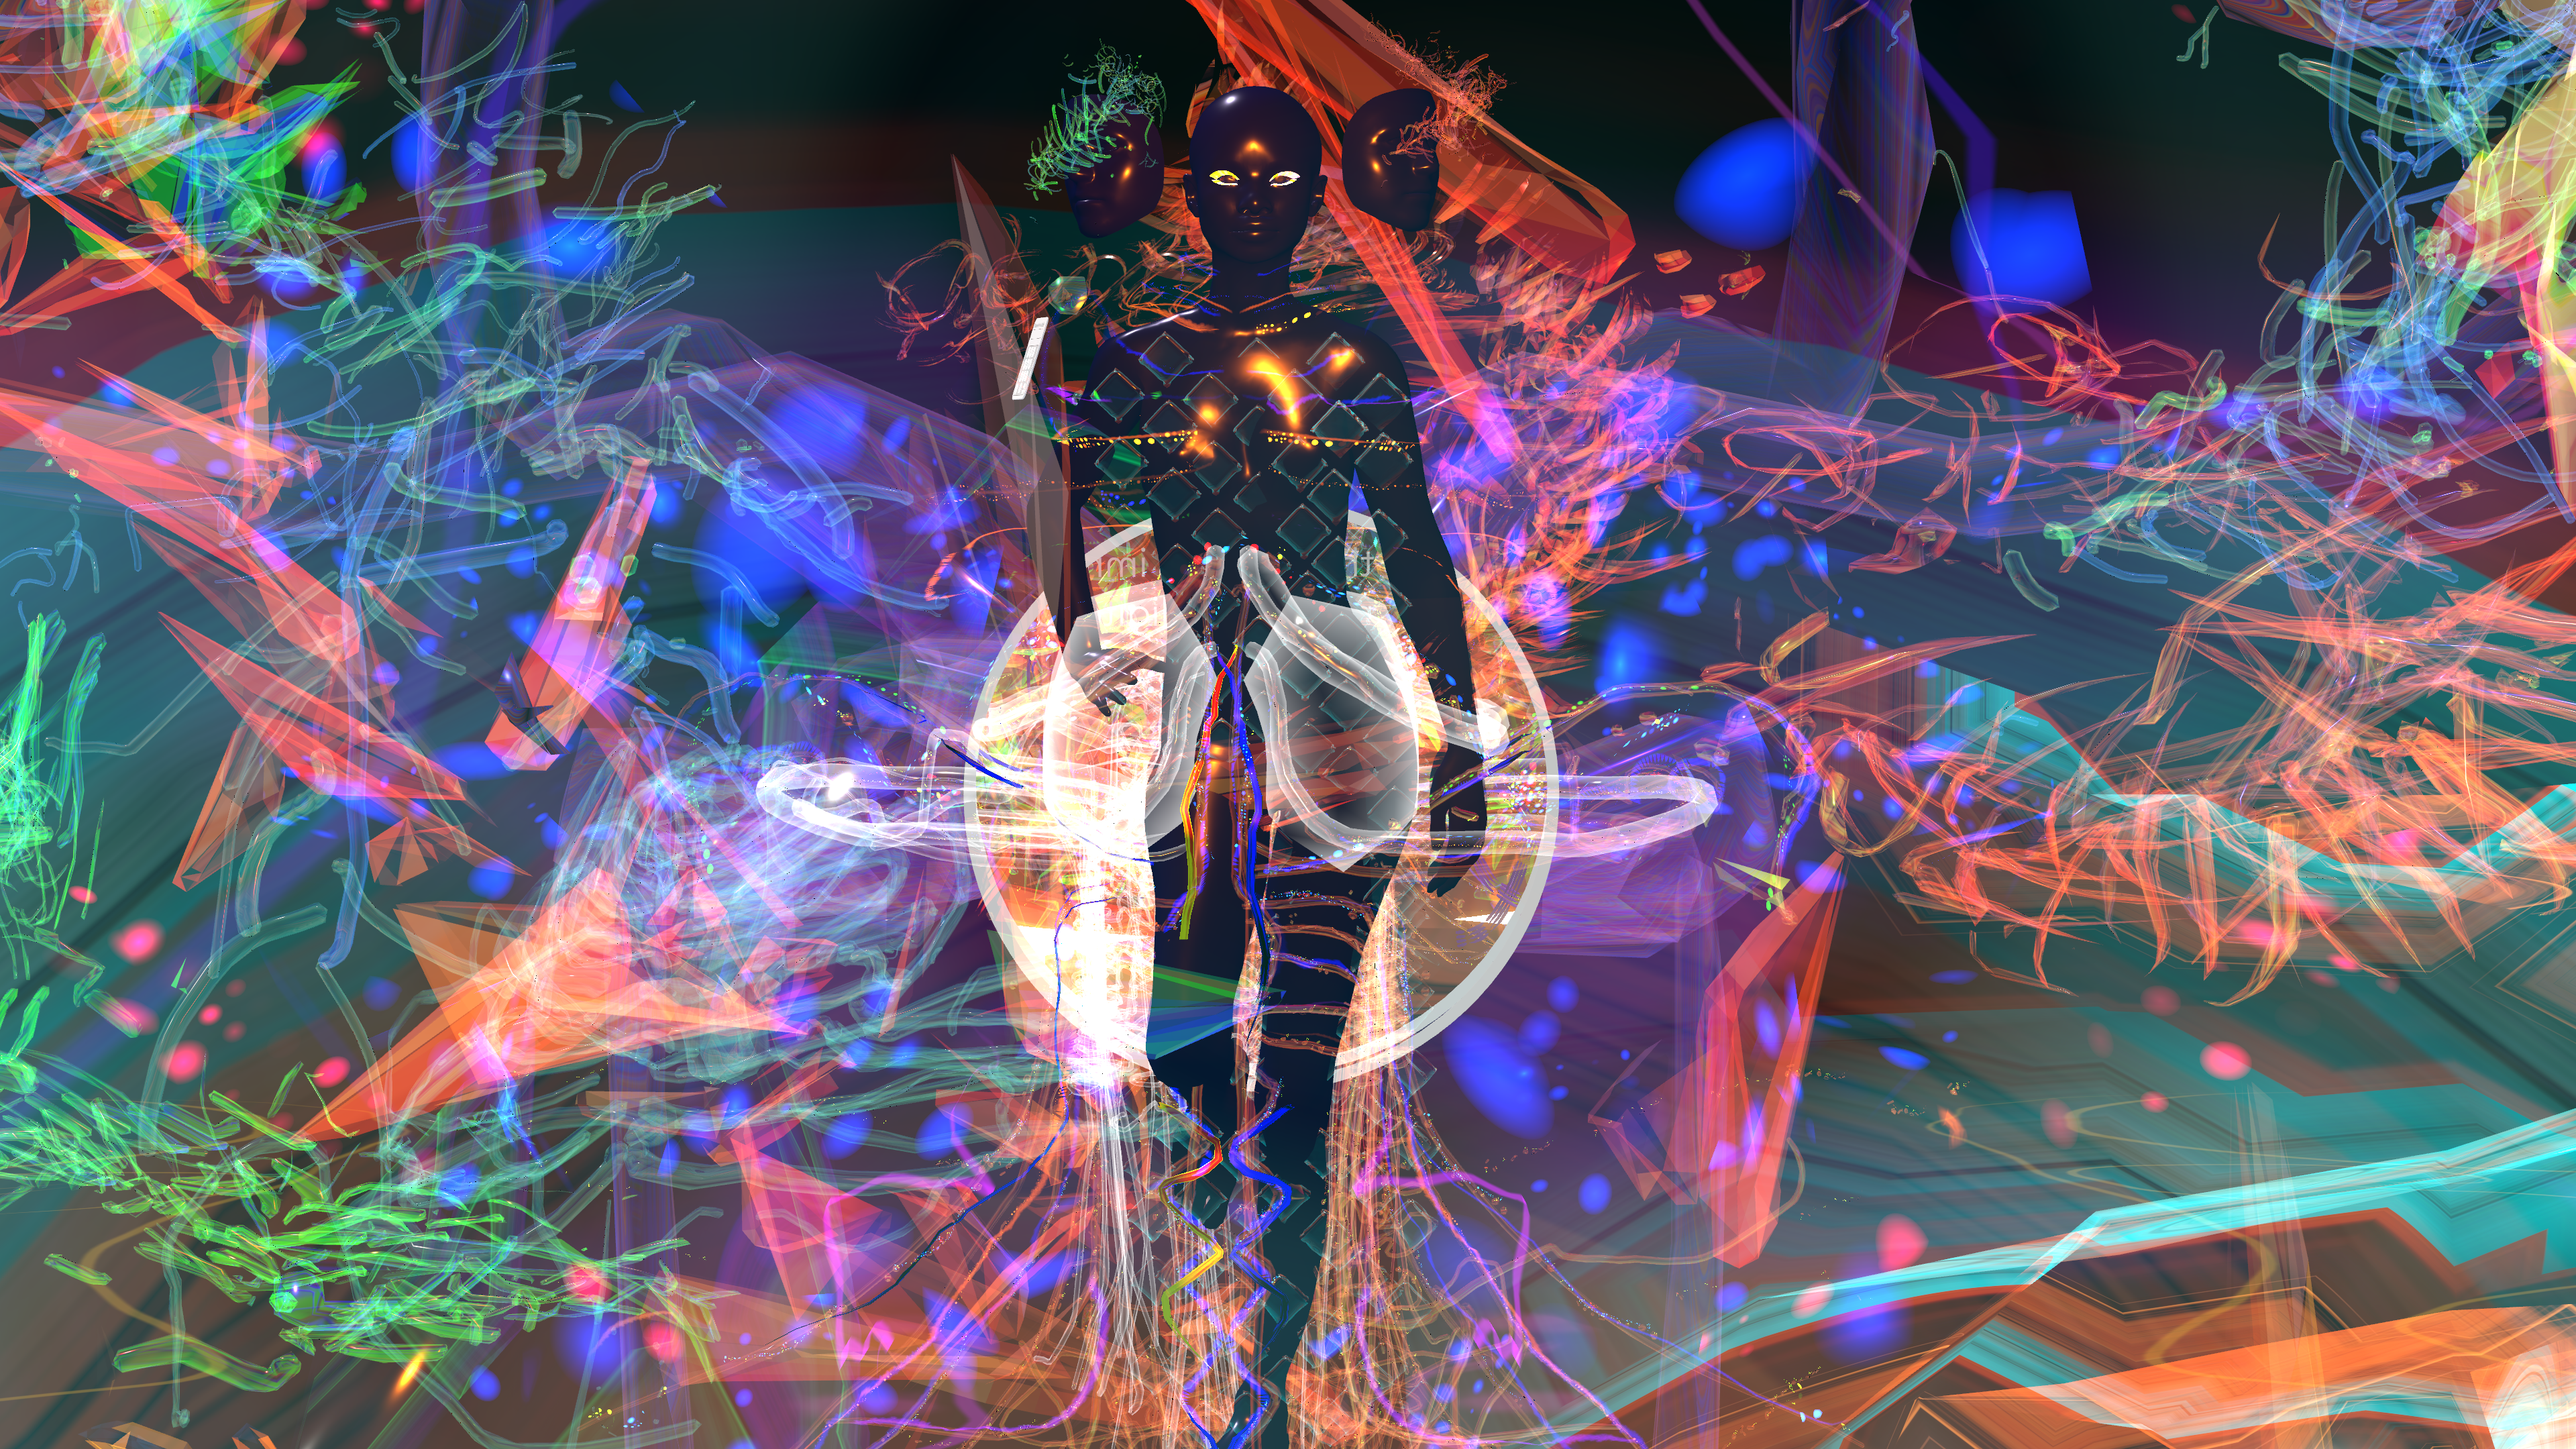 Digital avatar set within a virtual environment, Fashion Innovation Agency